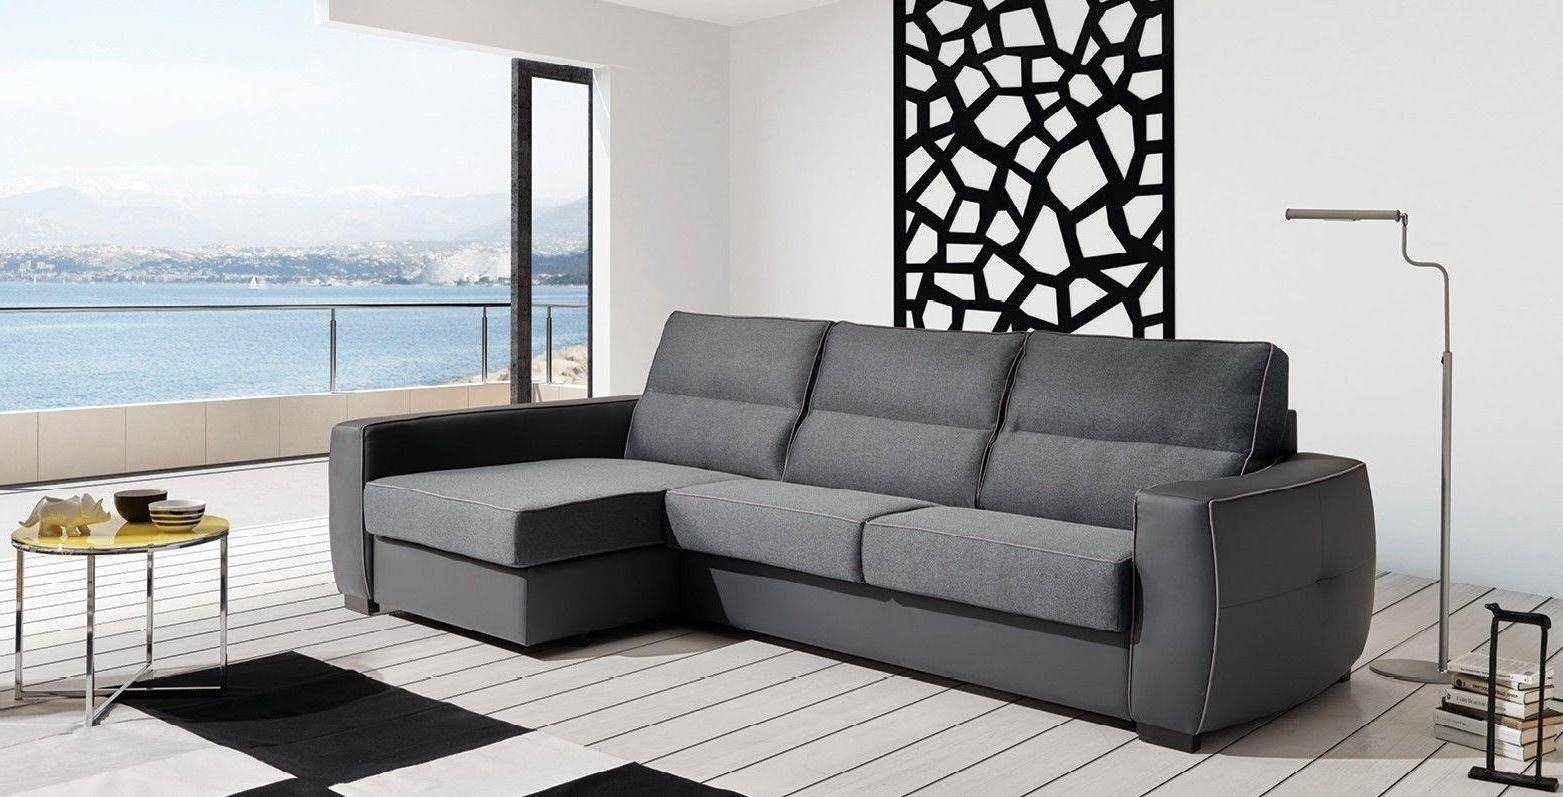 Esf Ray Grey Fabric Sectional Sleeper Sofa/Storage Modern Throughout Sectional Sofas With Storage (View 4 of 15)